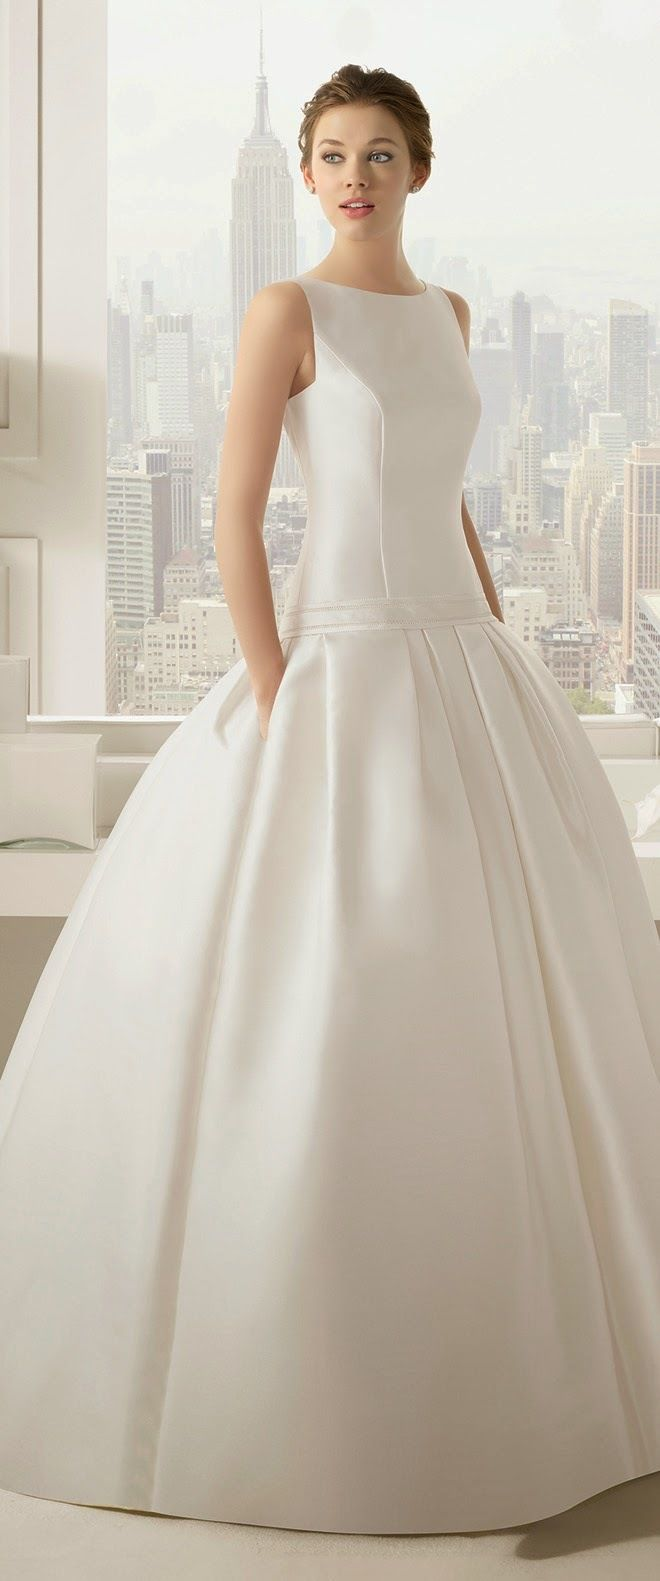 131 best Wedding Dresseswith Pockets images on Pinterest